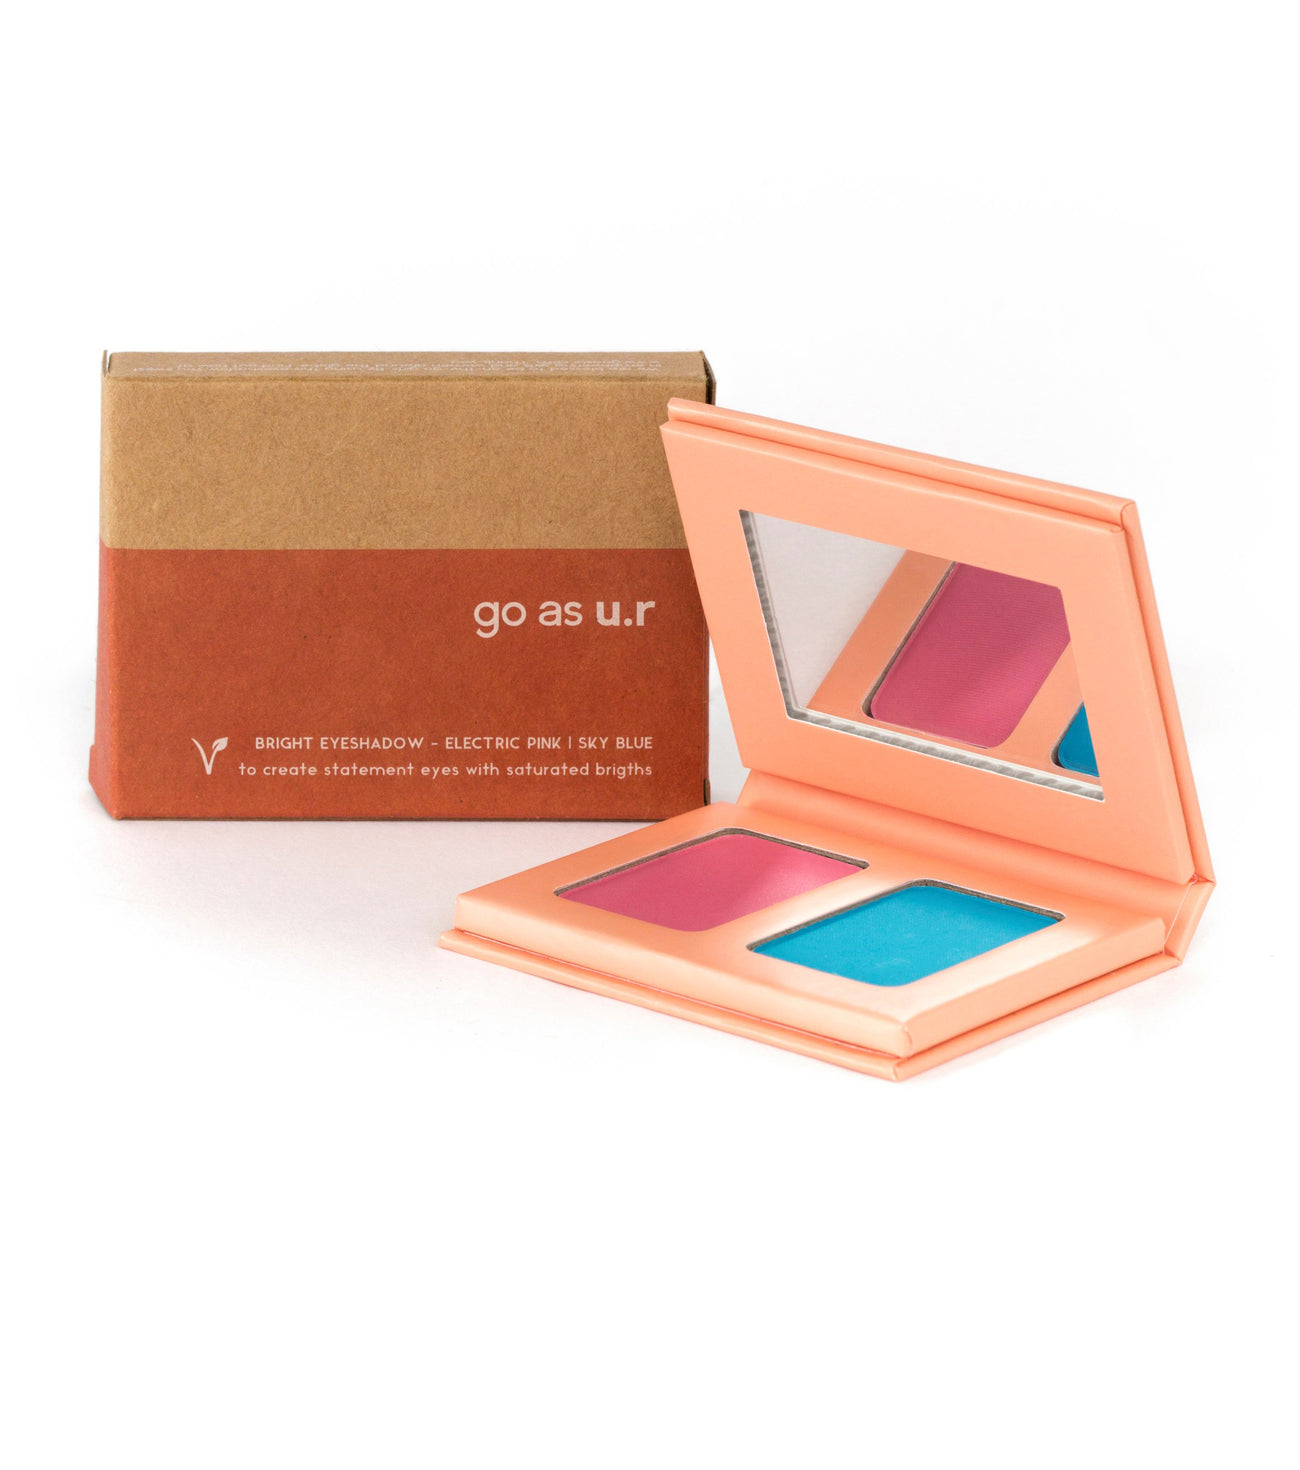 bright eyeshadow | electric pink - sky blue